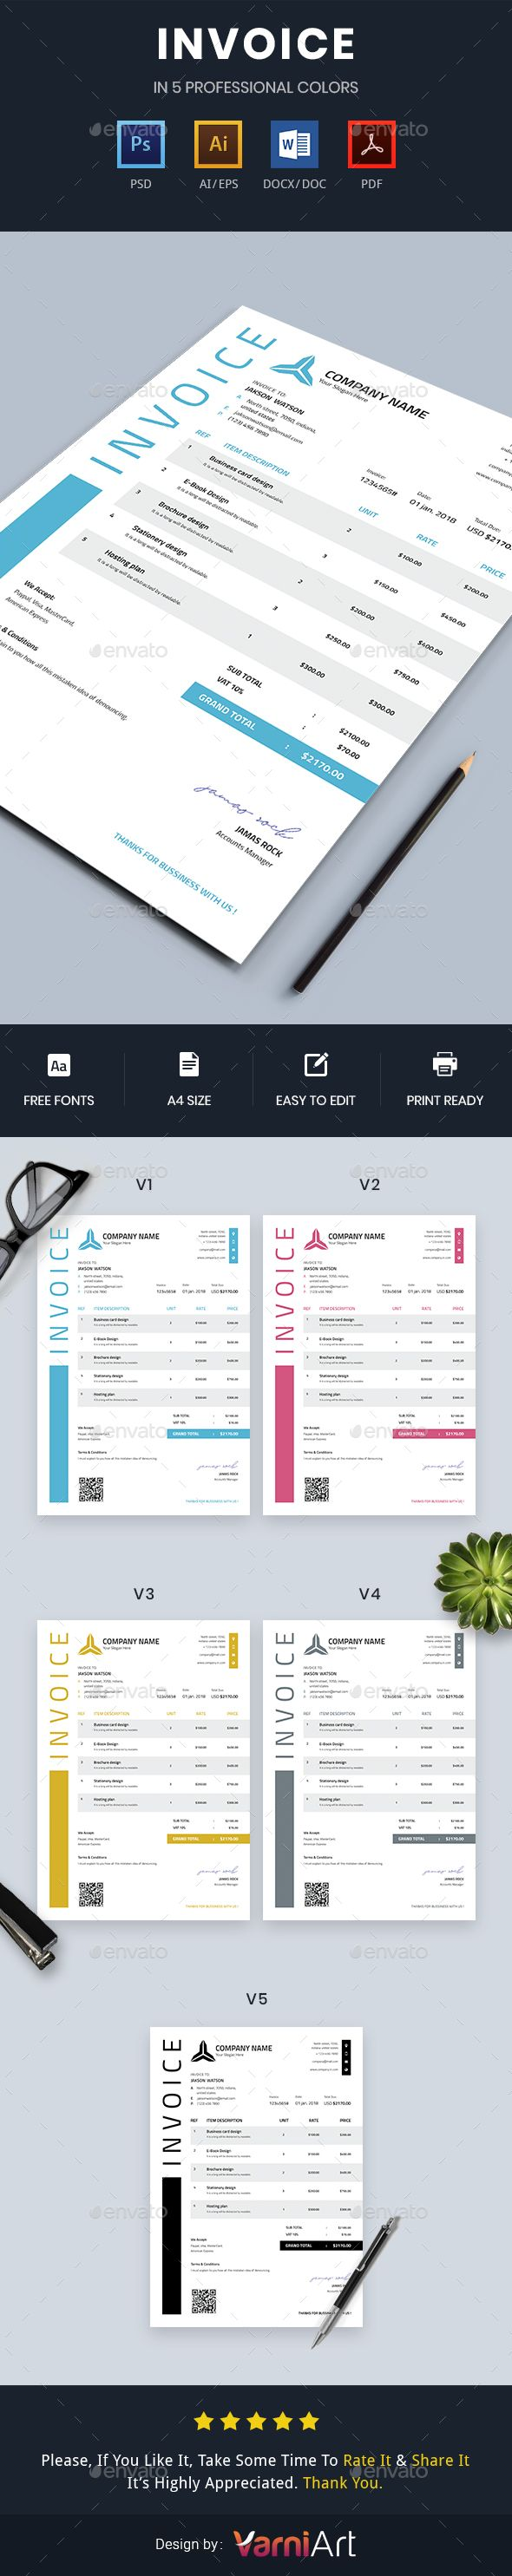 Invoice Page Alluring 214 Best Invoice Templates Excel Images On Pinterest  Invoice .